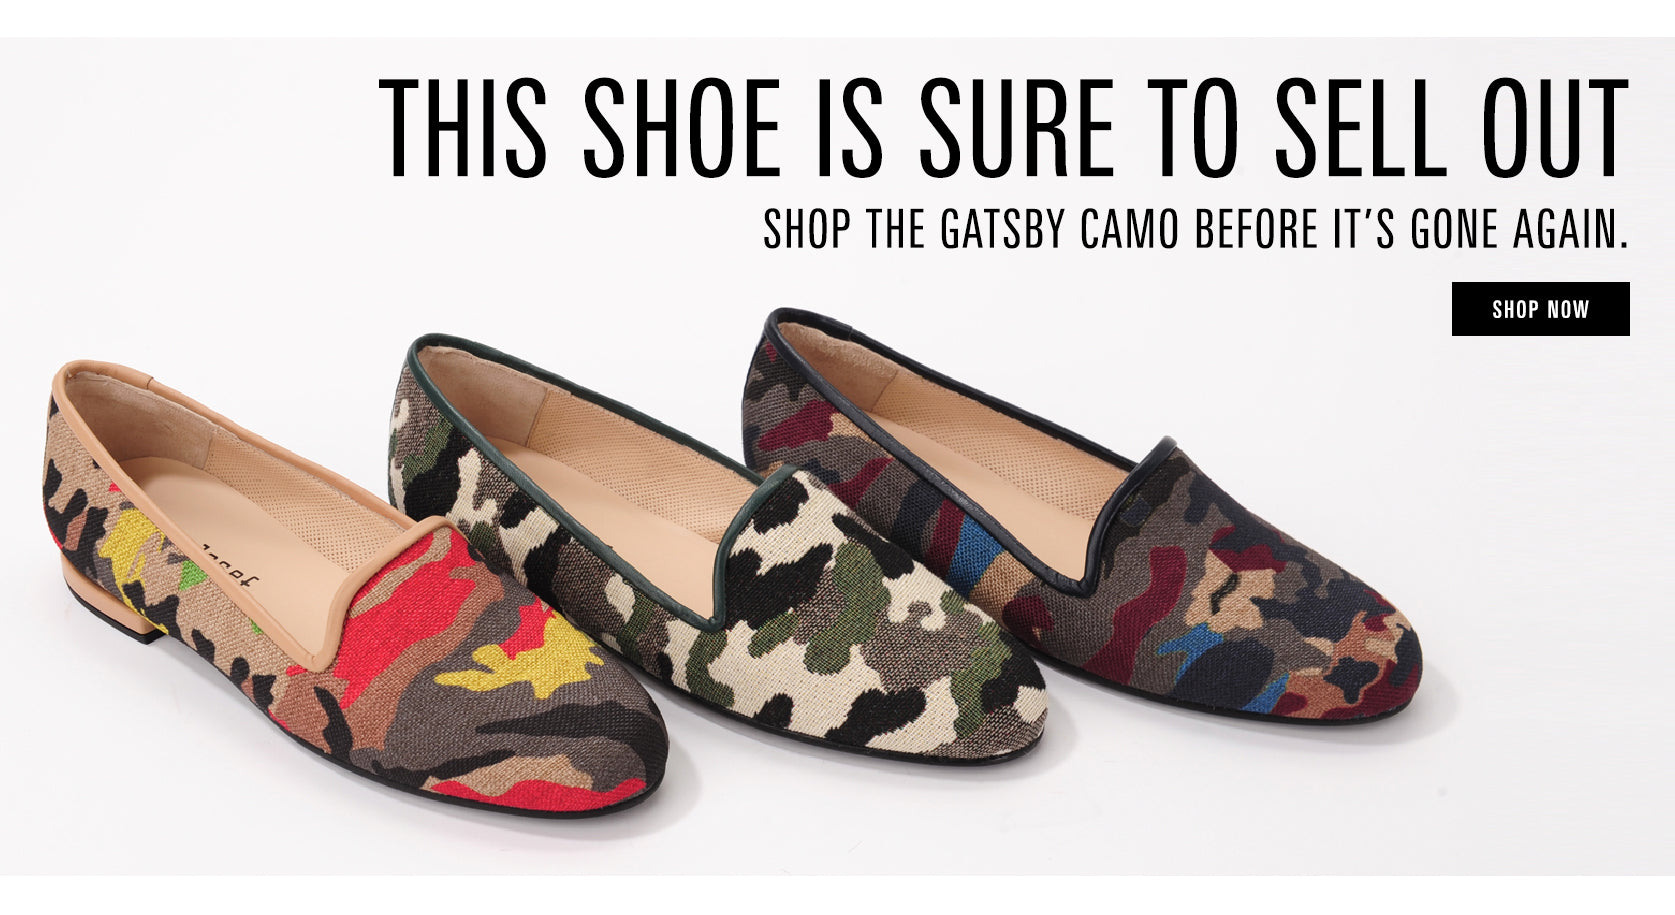 this shoe is sure to sell out. shop the gatsby camo.